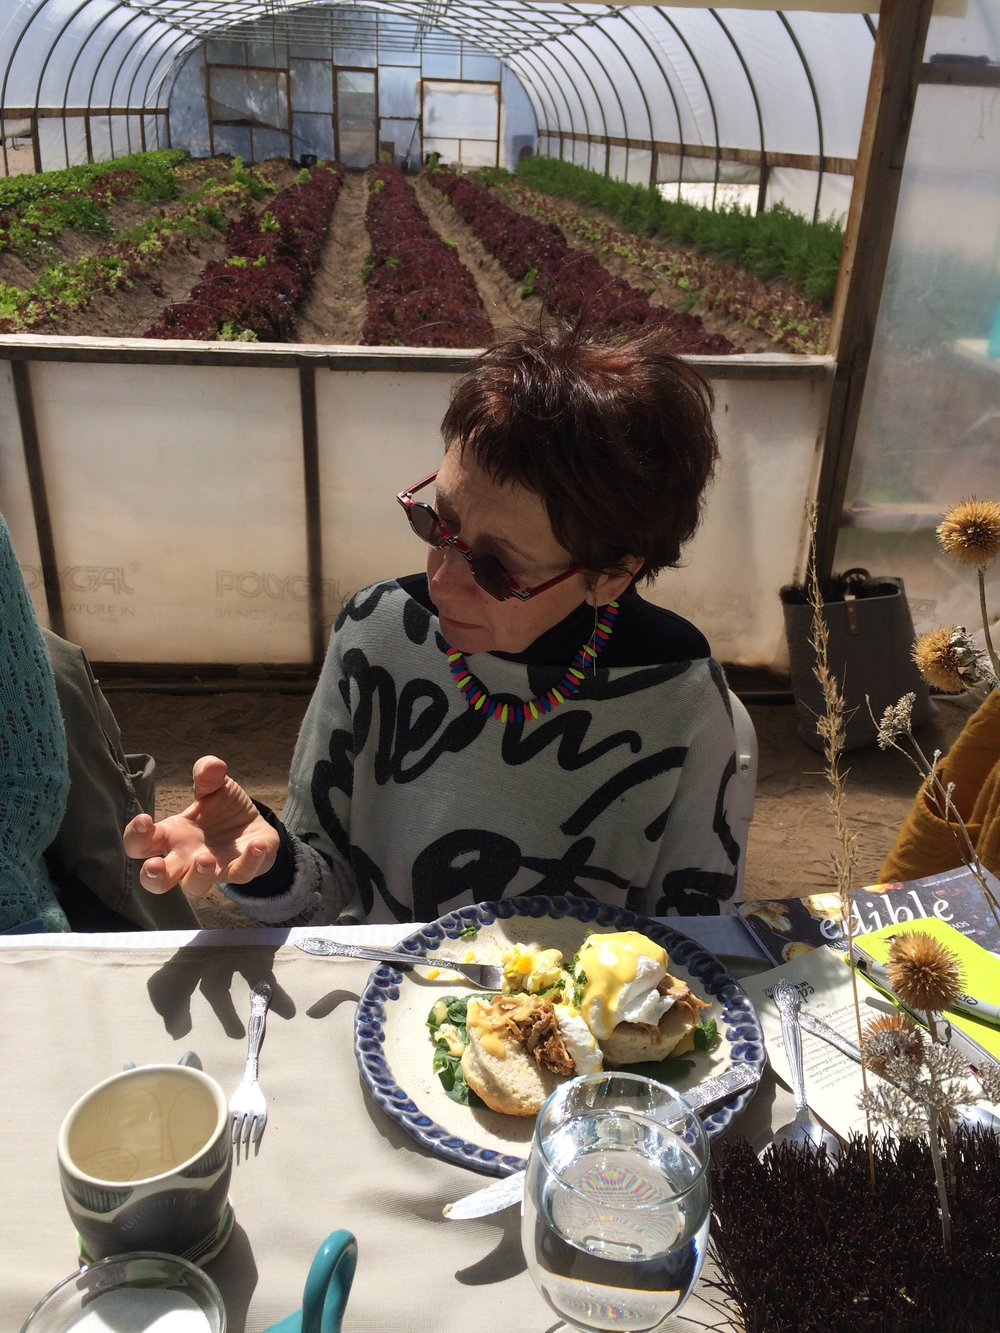 Gathered  for brunch at Valle Encantado Farm